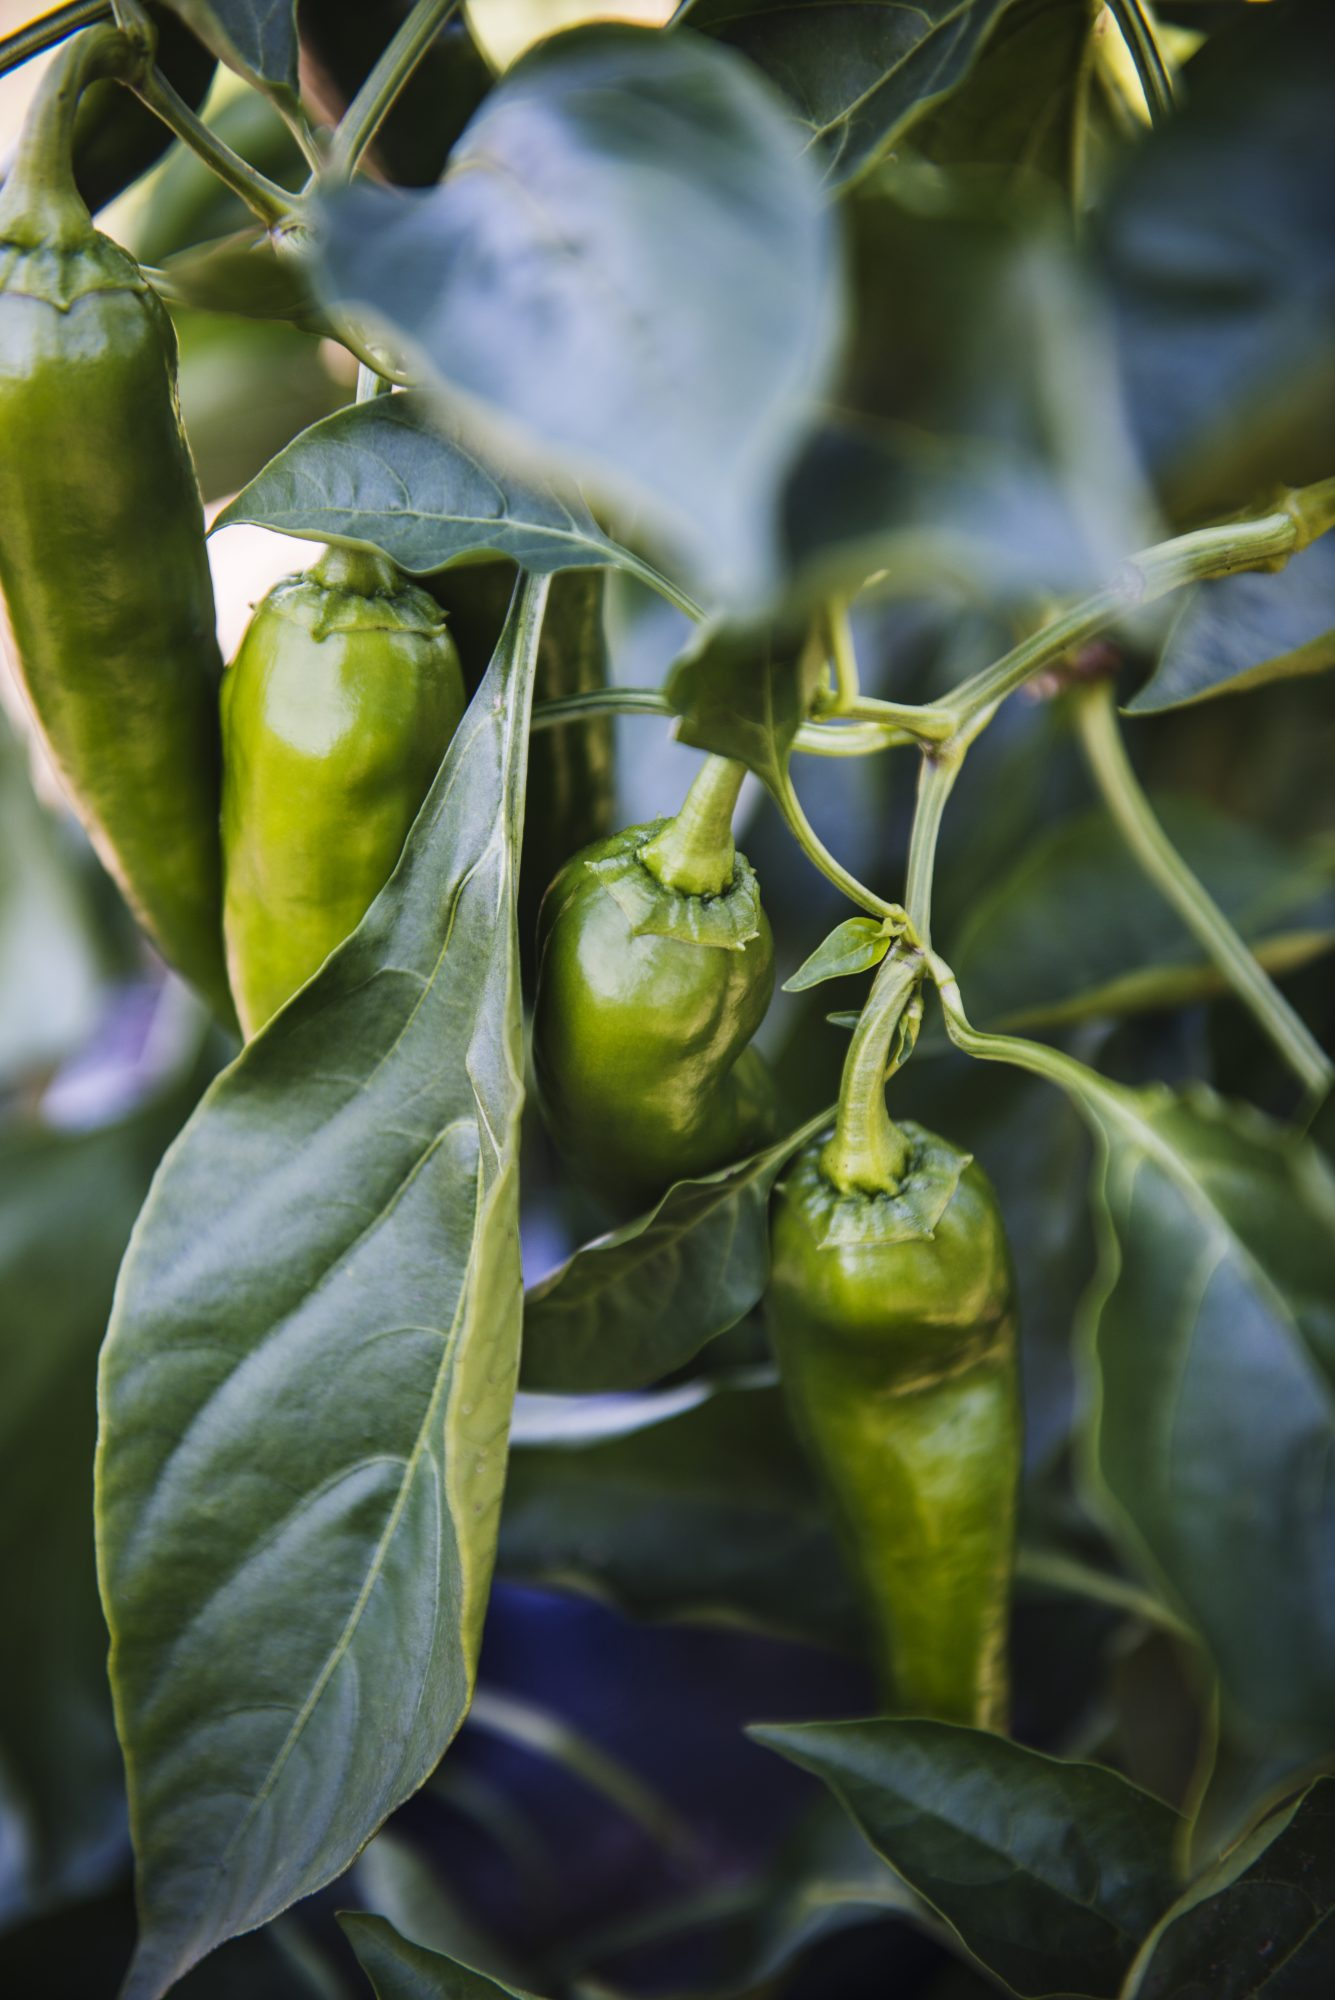 Green Jalapeno peppers growing on the vine